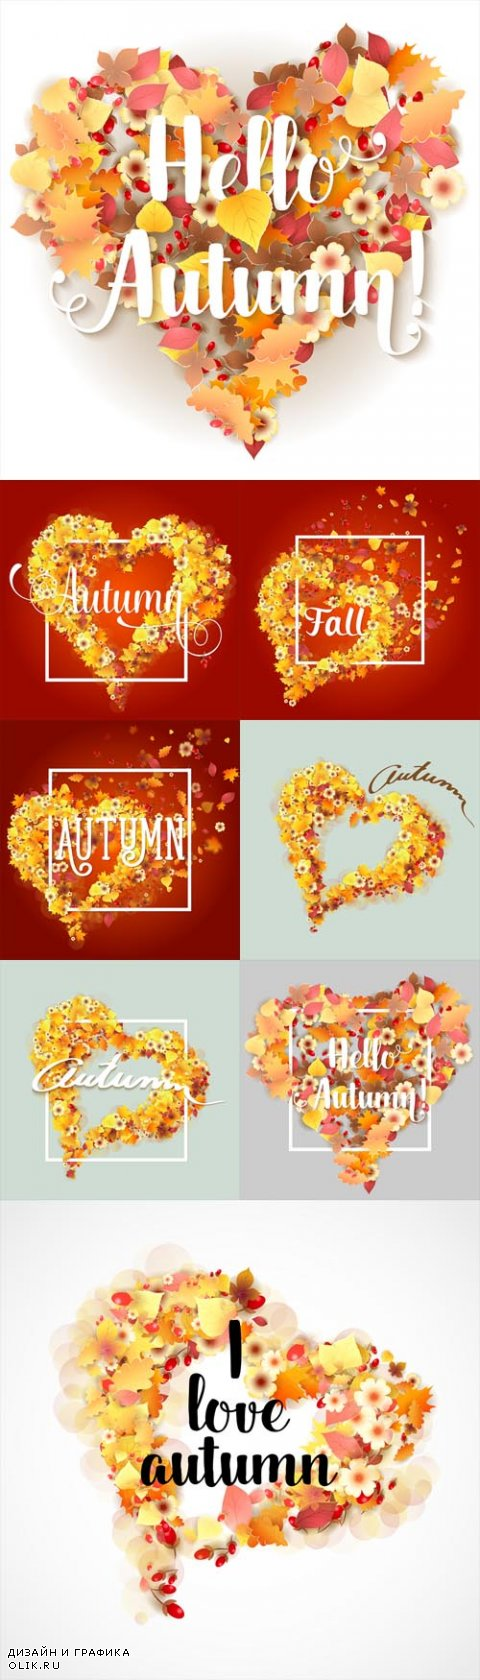 Vecto Autumn Frames in Shape of Heart